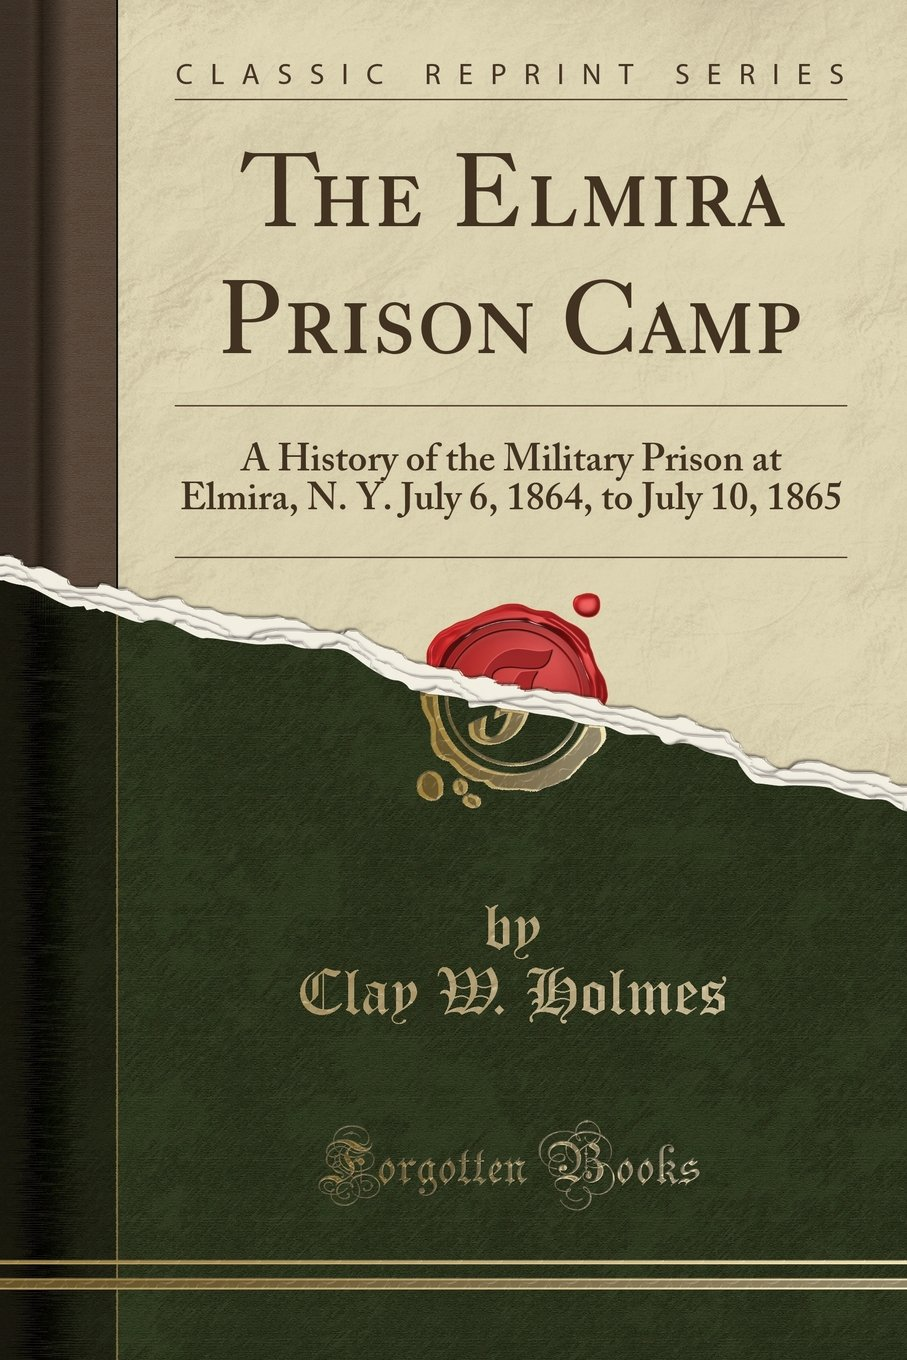 The Elmira Prison Camp: A History of the Military Prison at Elmira, N. Y. July 6, 1864, to July 10, 1865 (Classic Reprint) pdf